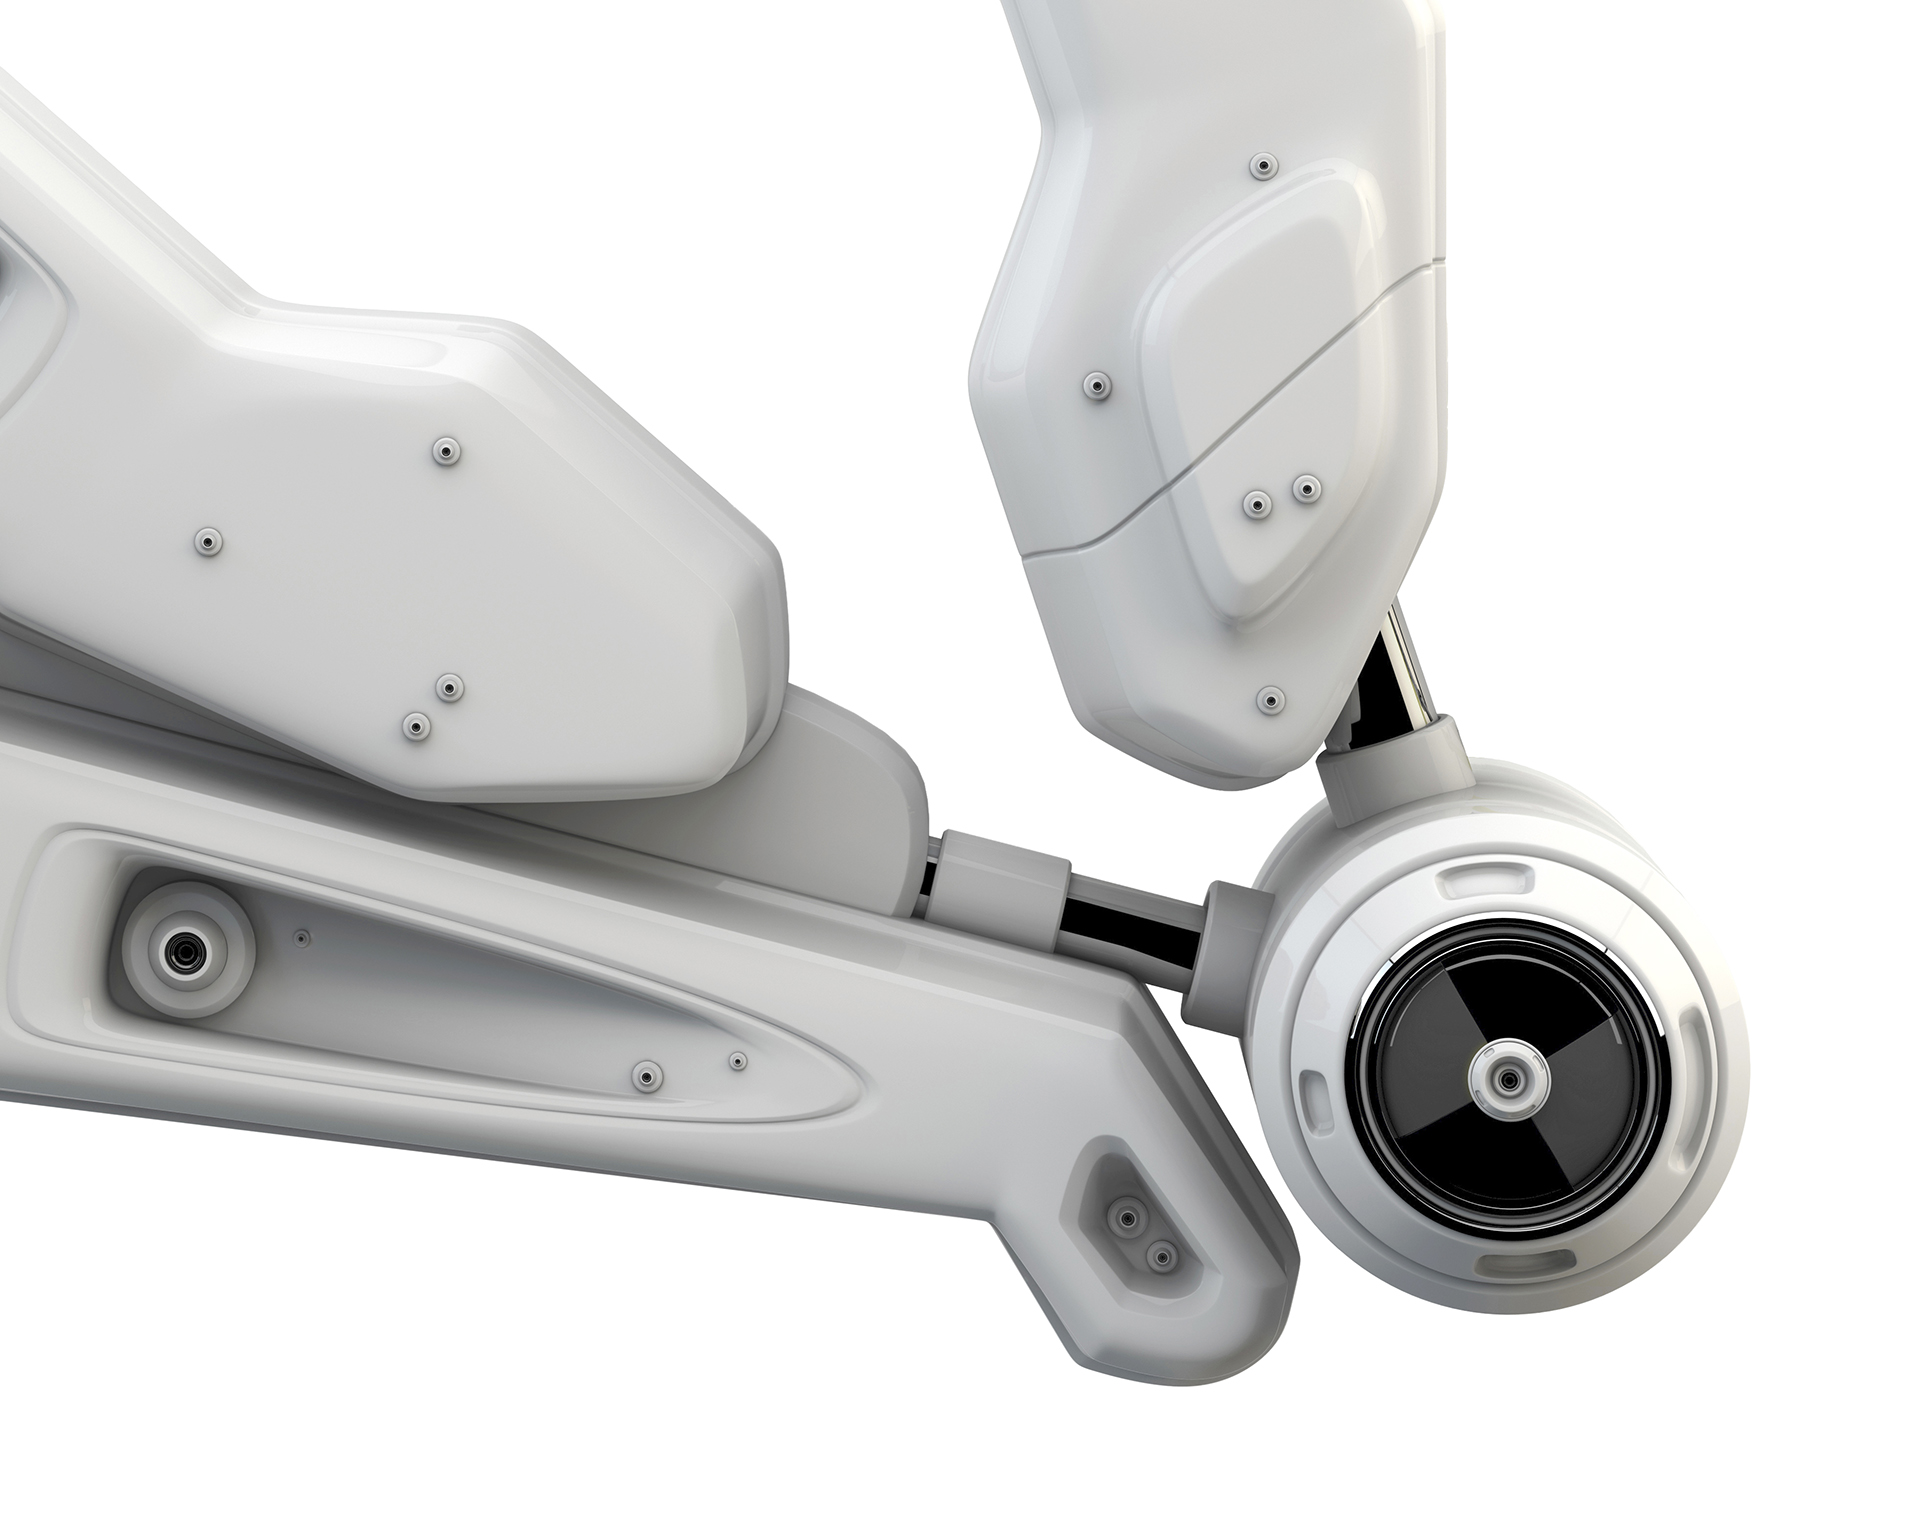 Miniature encoders help advance surgical robot capabilities